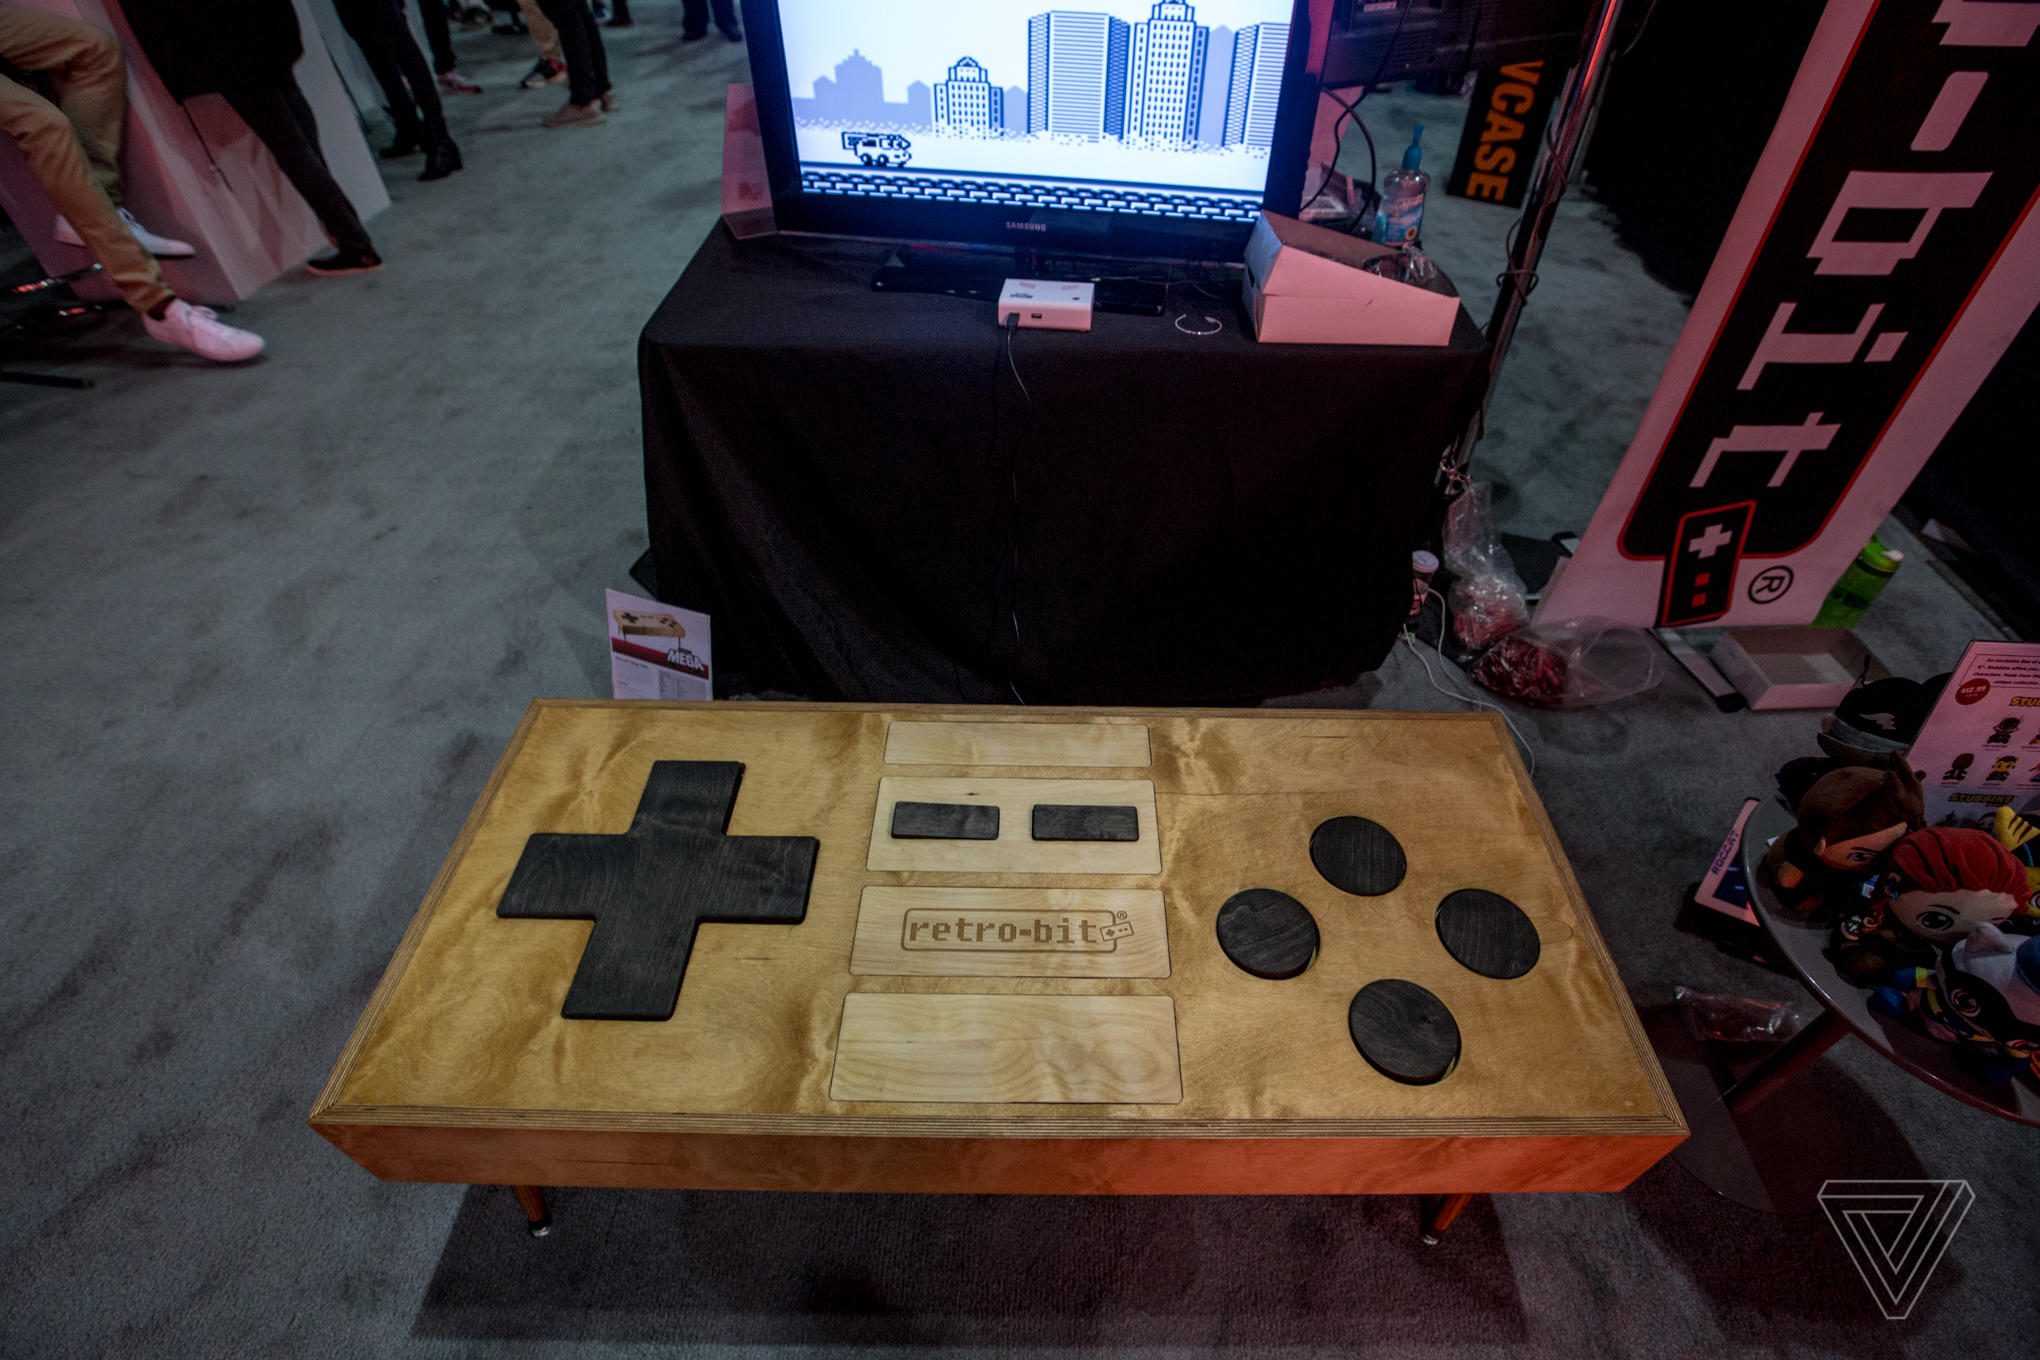 This coffee table sized NES controller looks great but plays